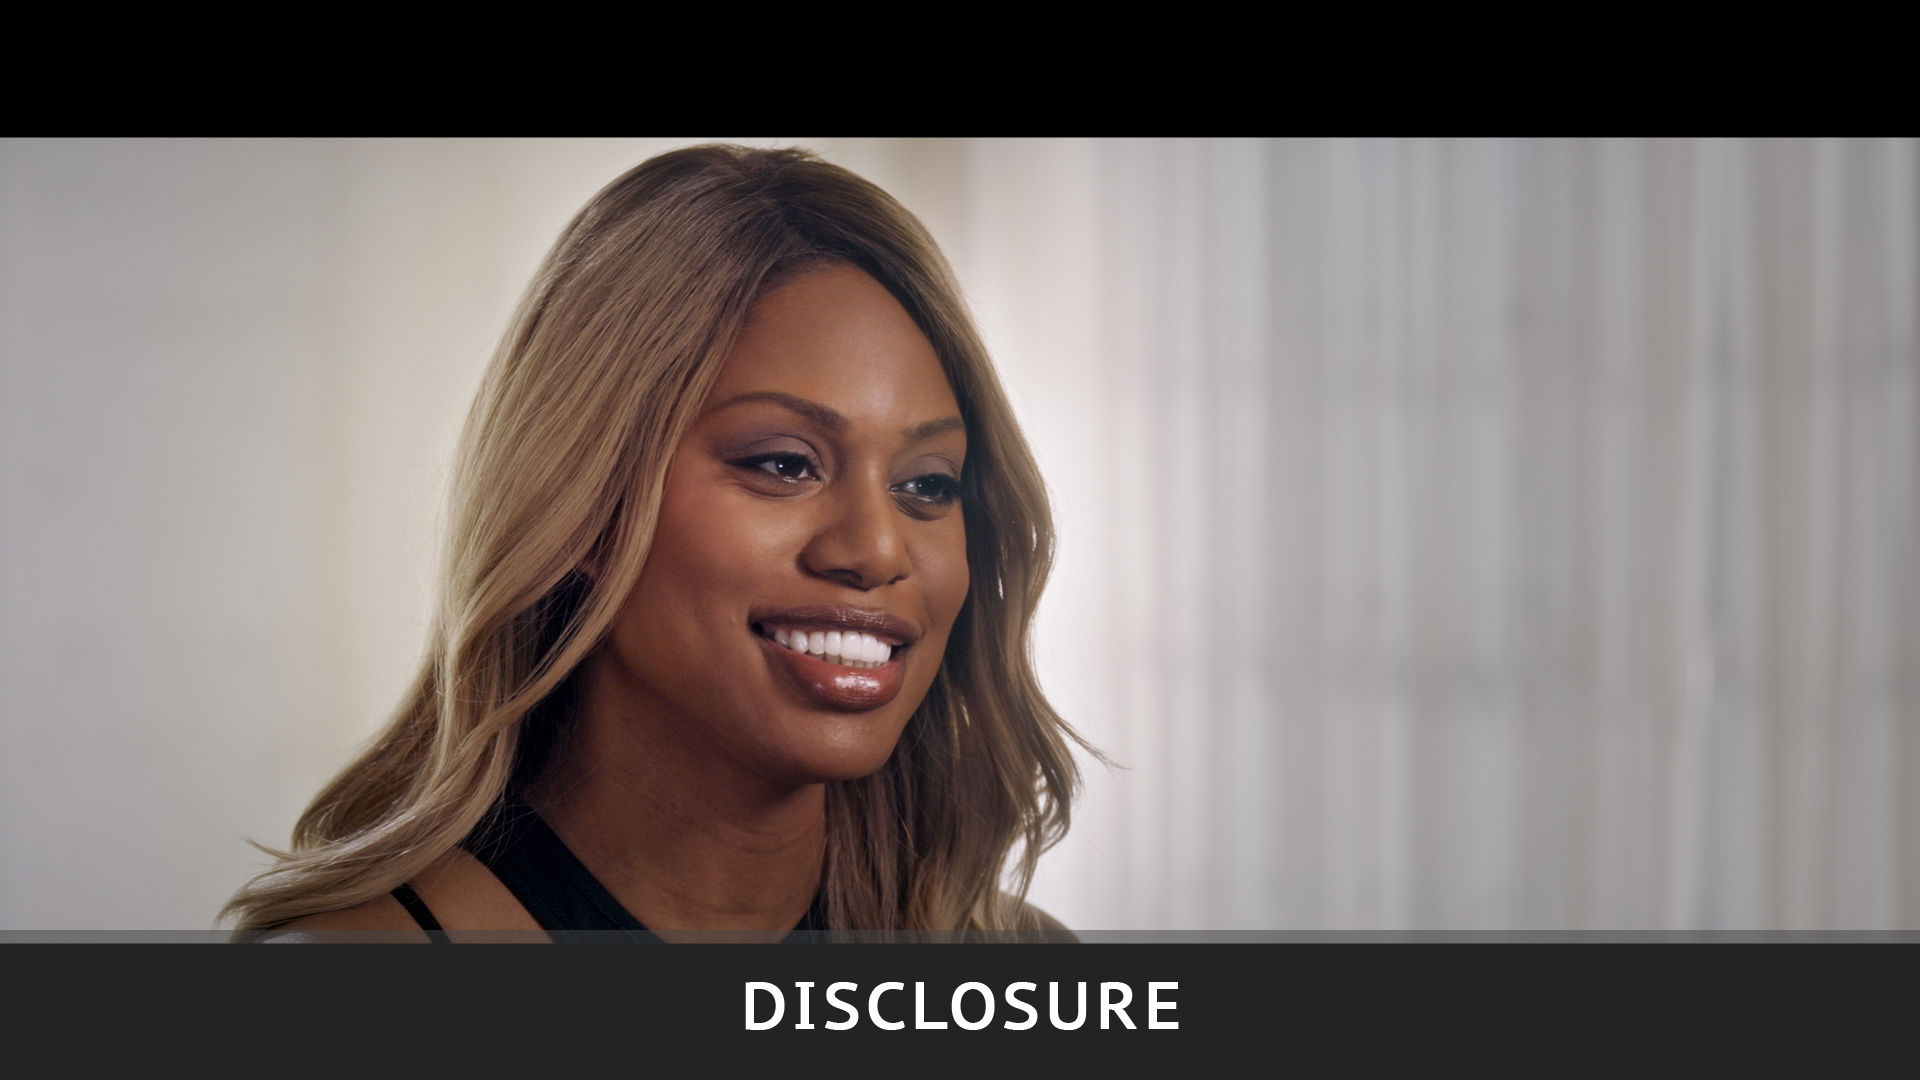 Disclosure Documentary / Netflix - Color Grading / Color Correction / Post Production